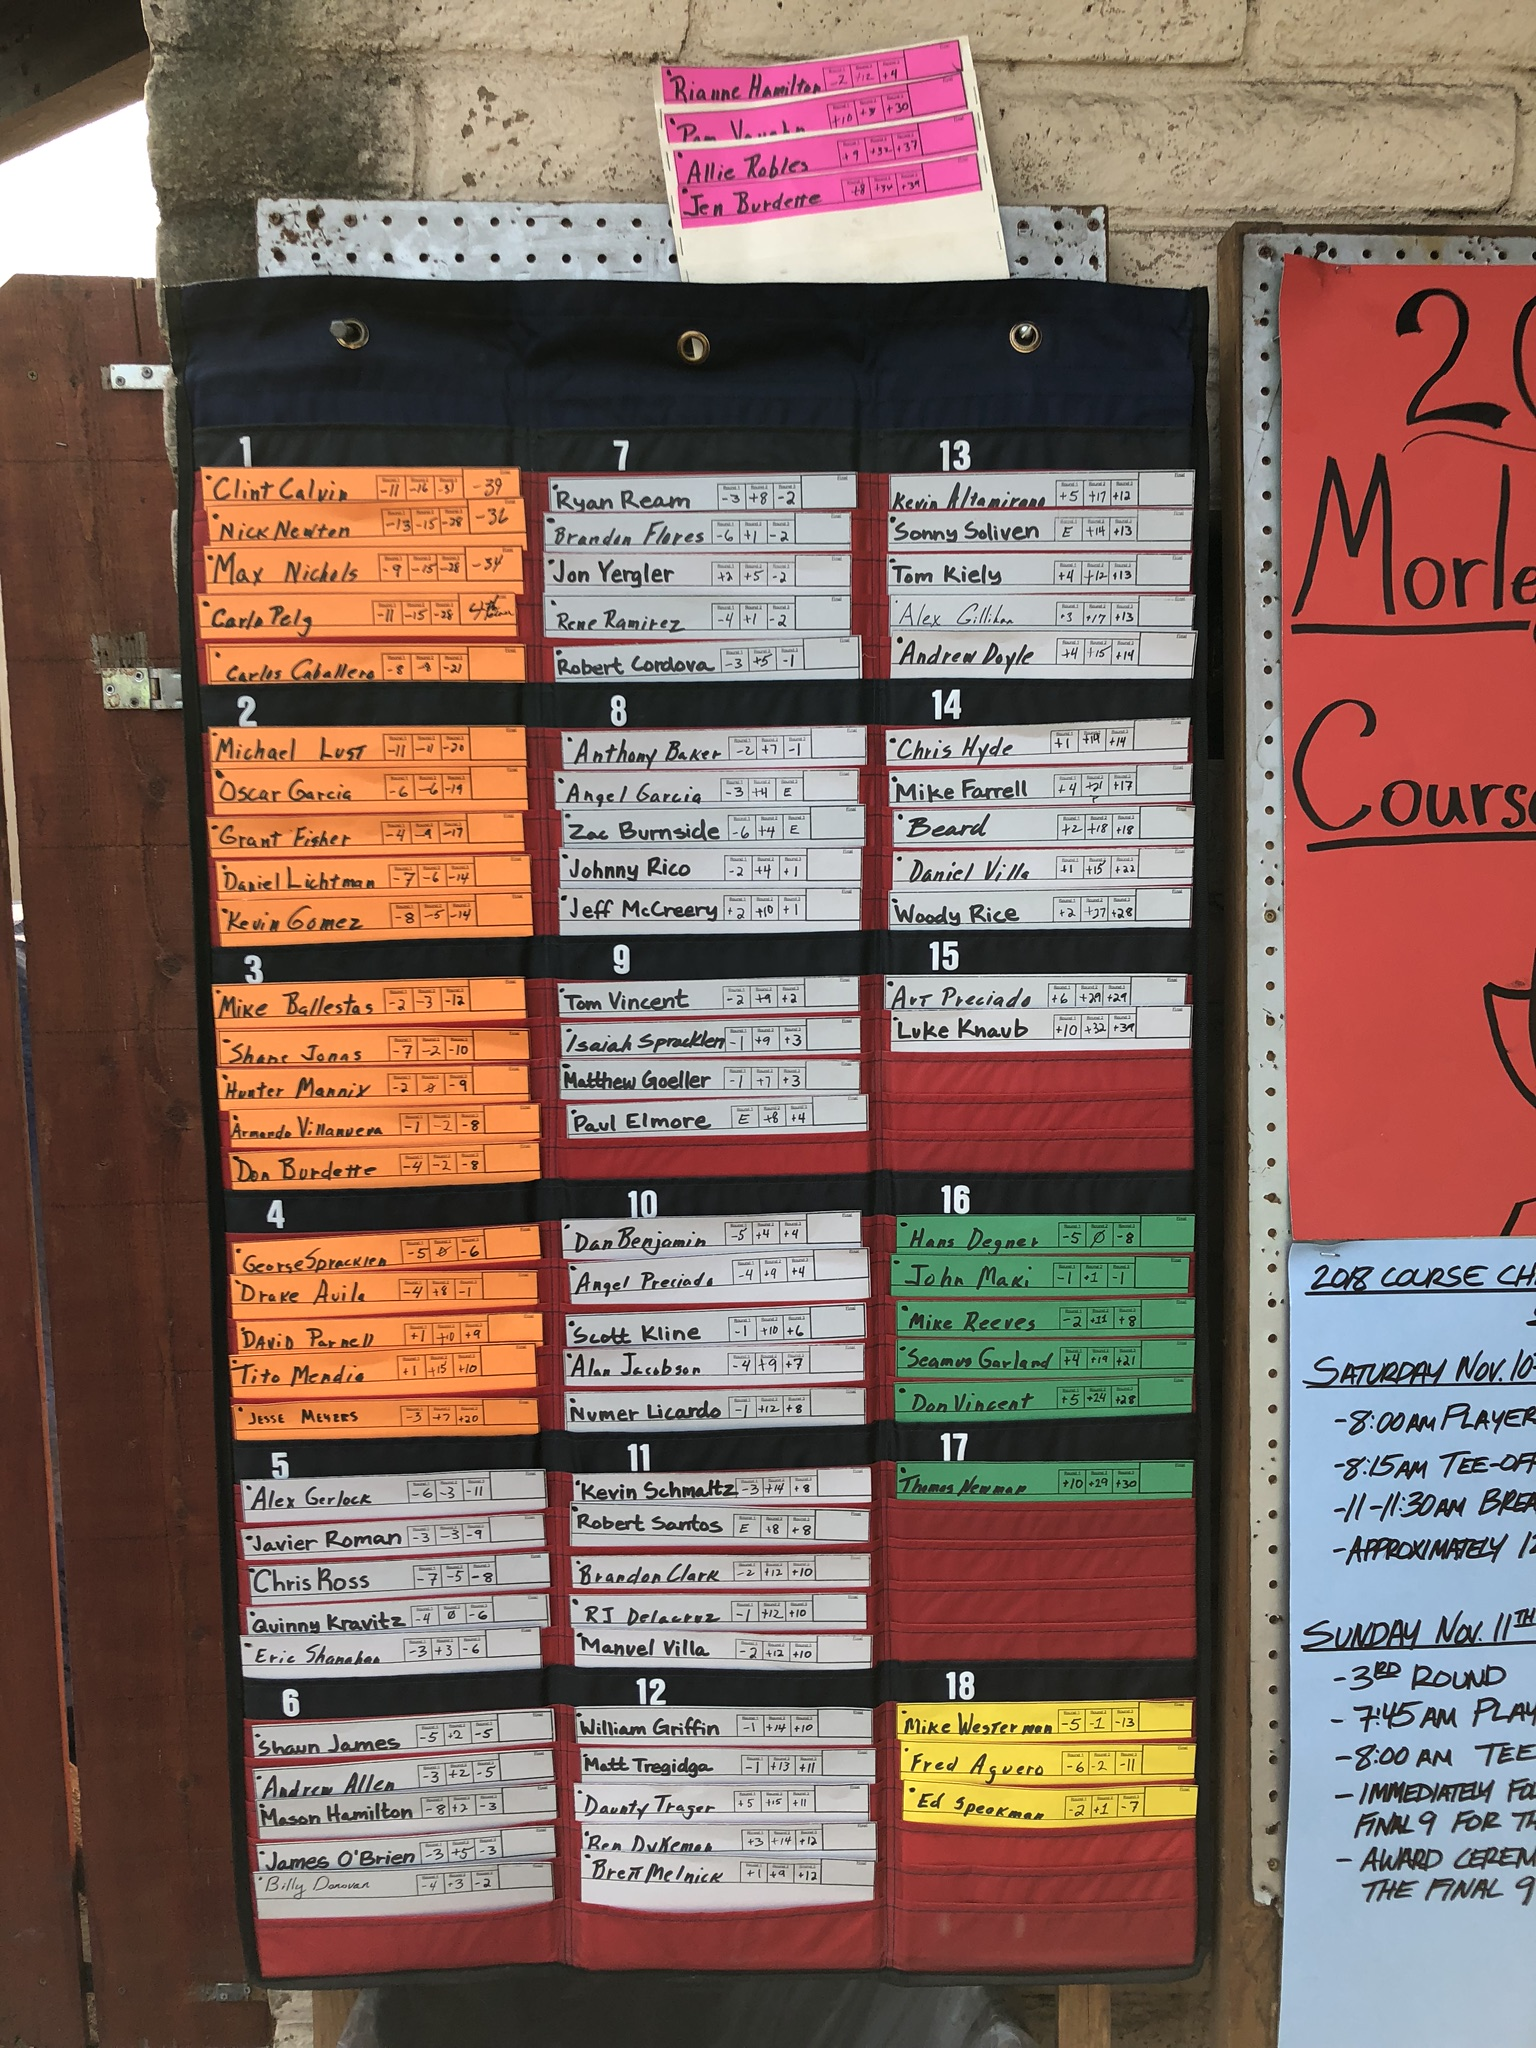 Morley Field Course Championship Final Results